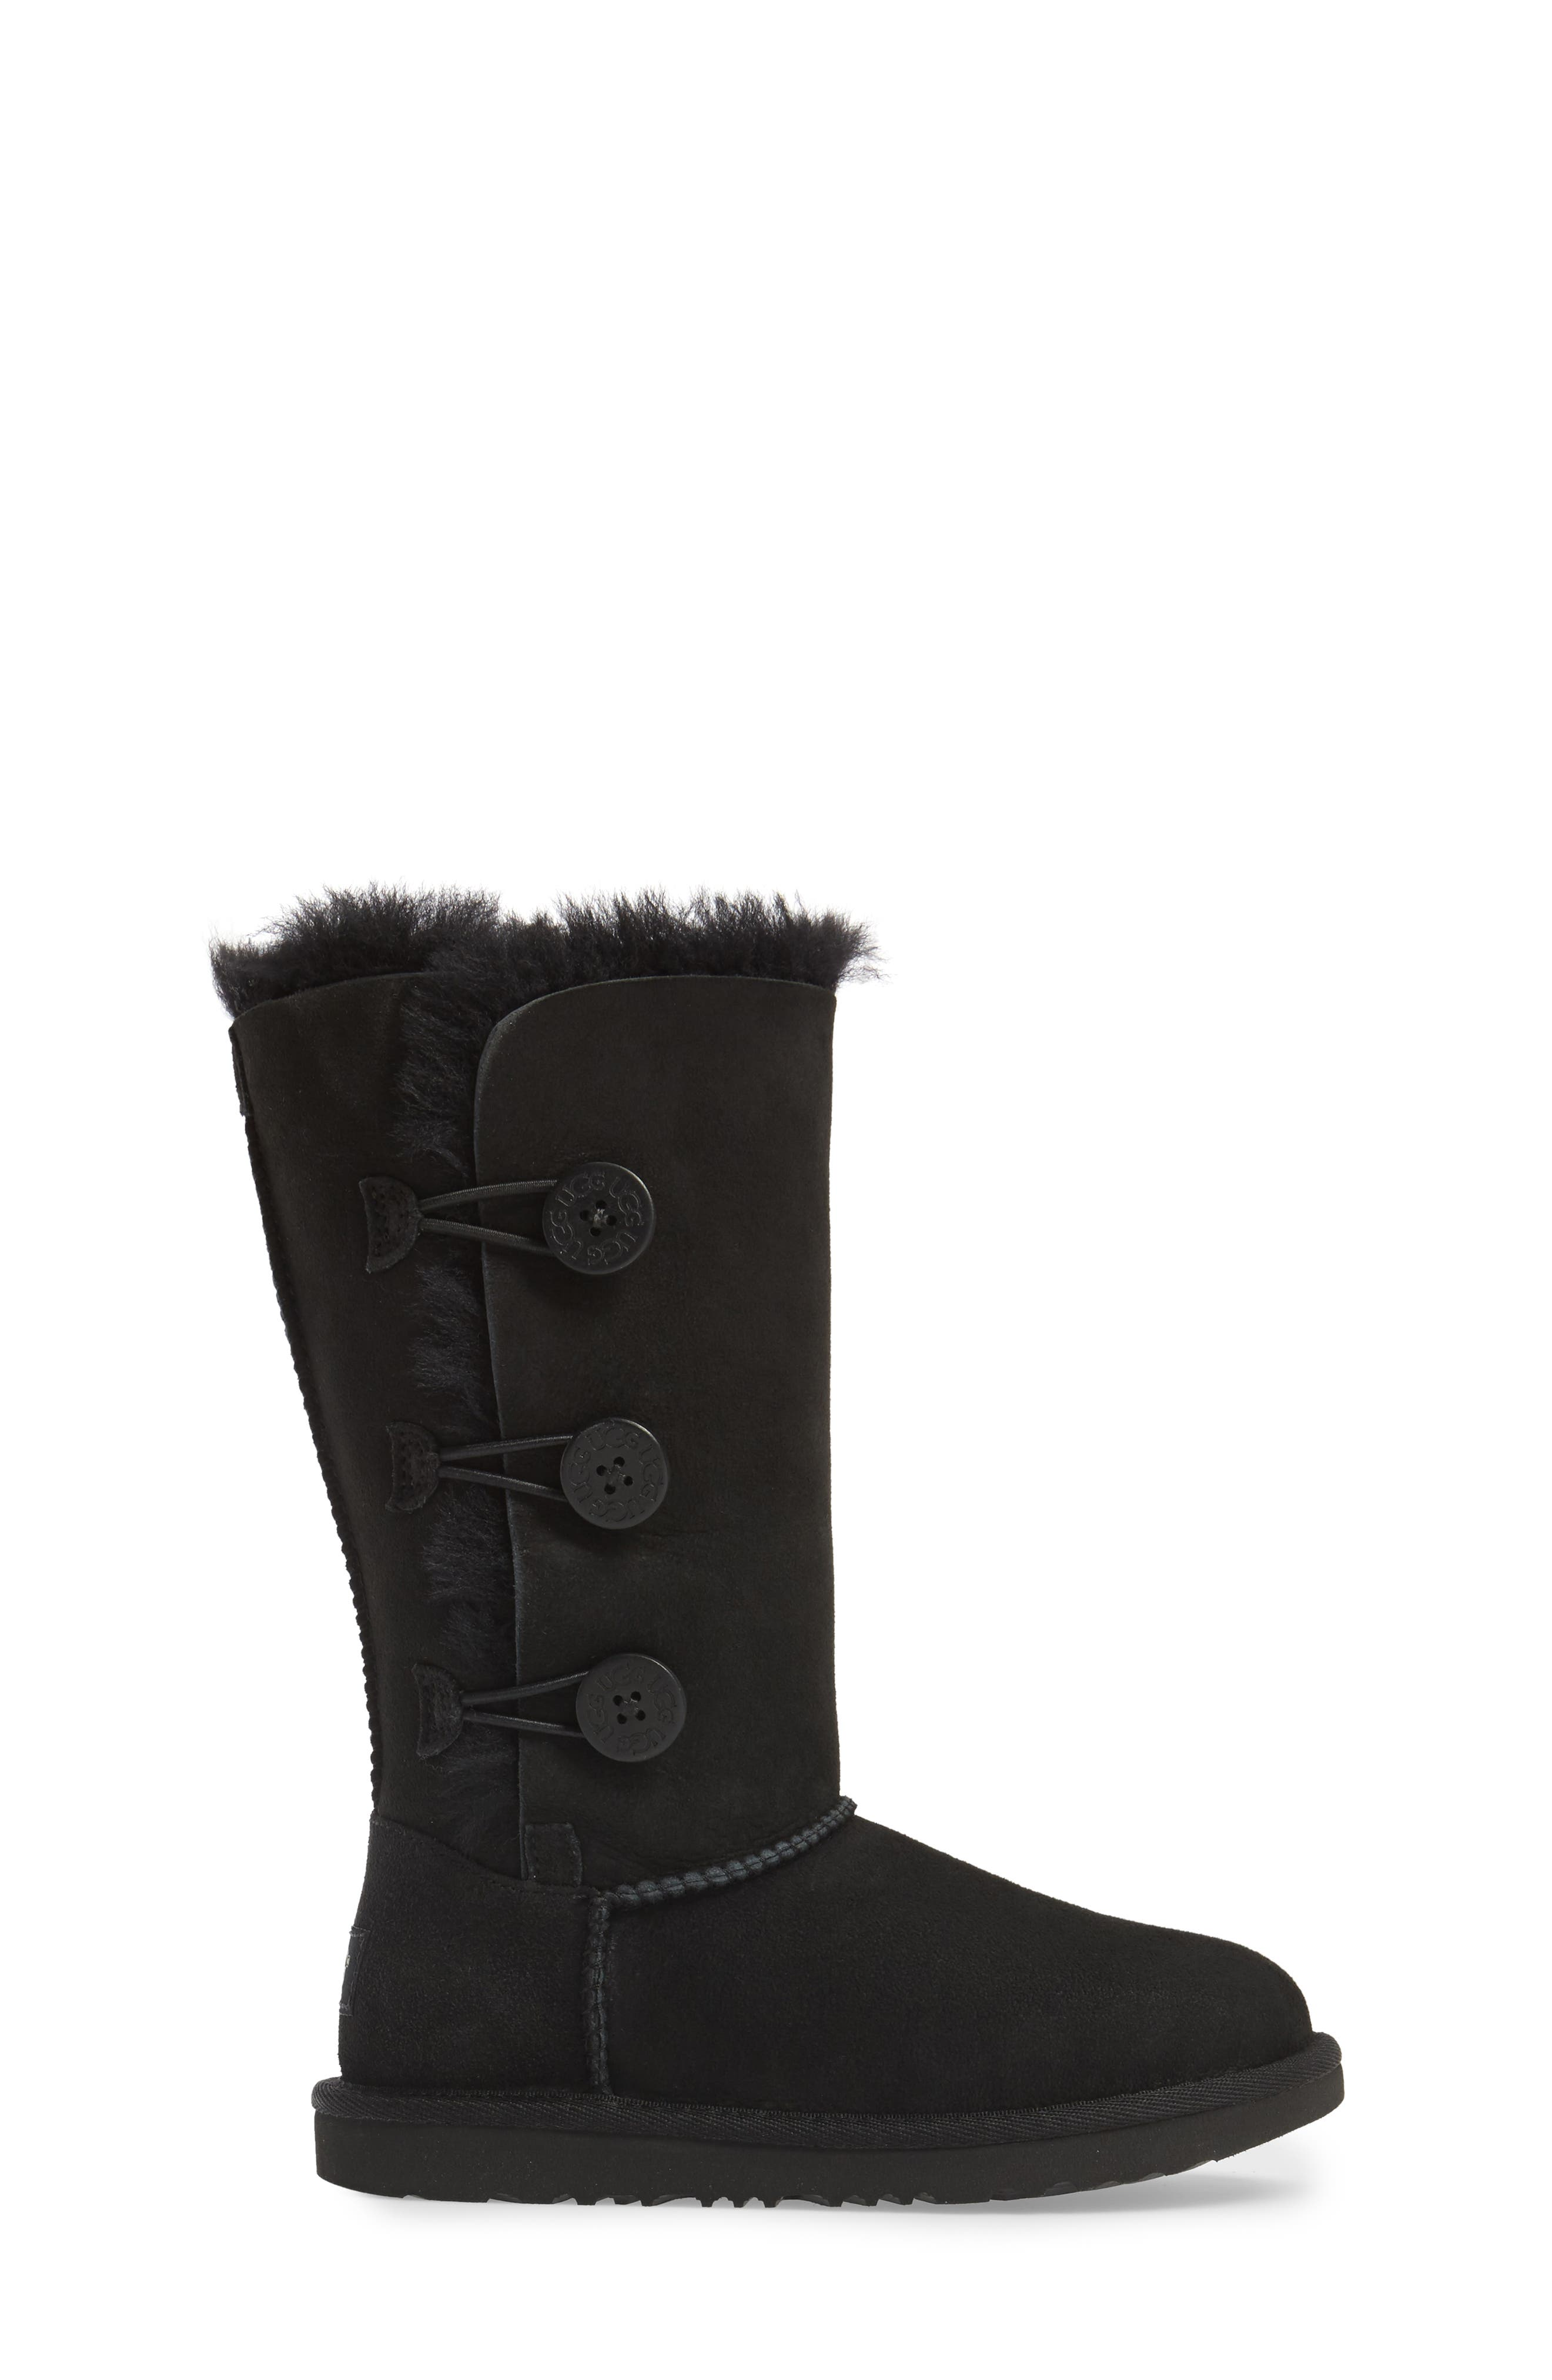 UGG<SUP>®</SUP>, Bailey Button Triplet II Genuine Shearling Boot, Alternate thumbnail 3, color, BLACK SUEDE